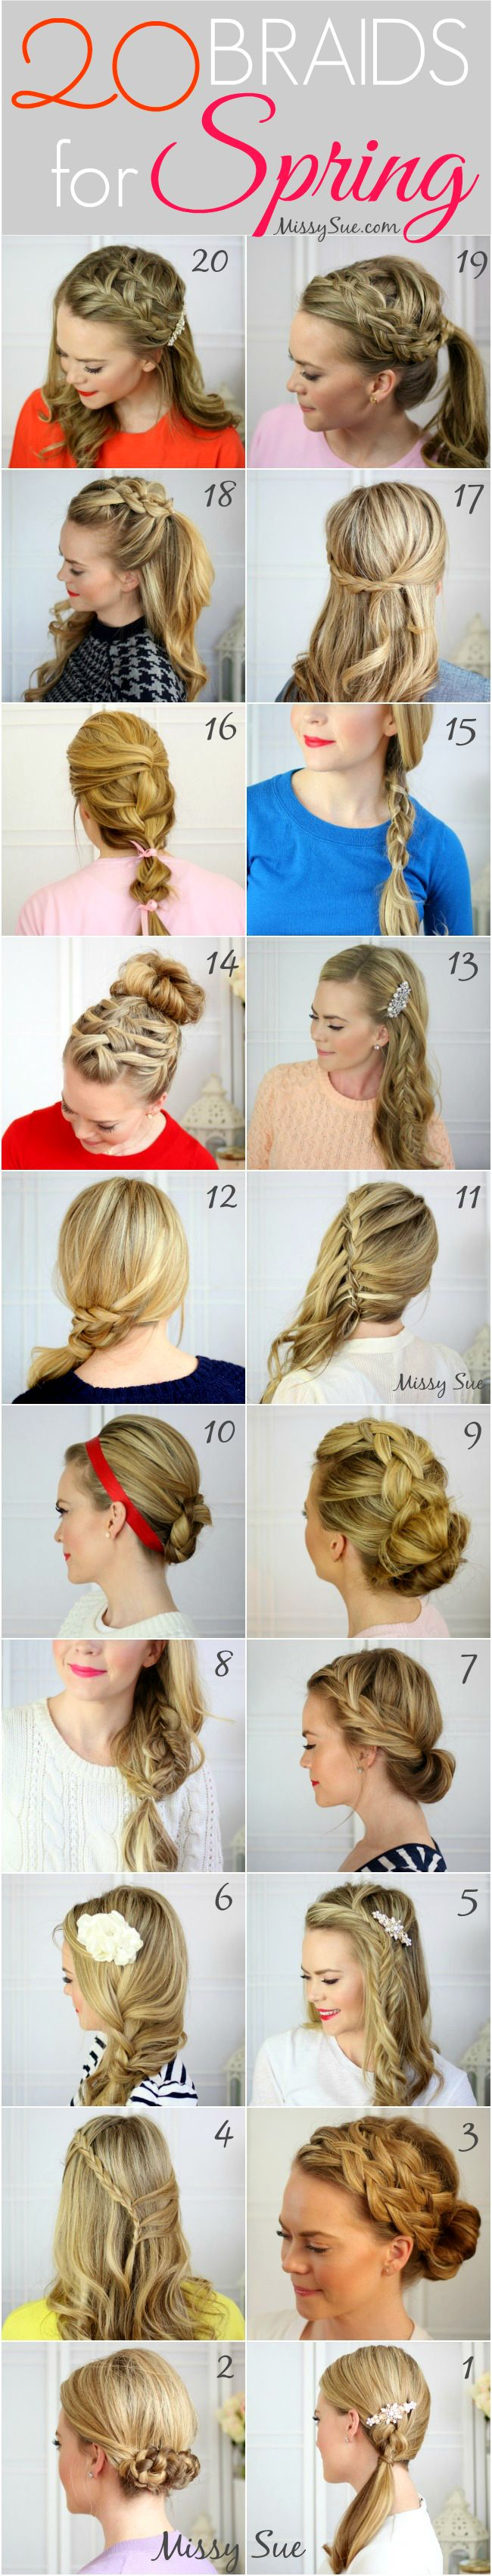 760 best Hairstyles images on Pinterest